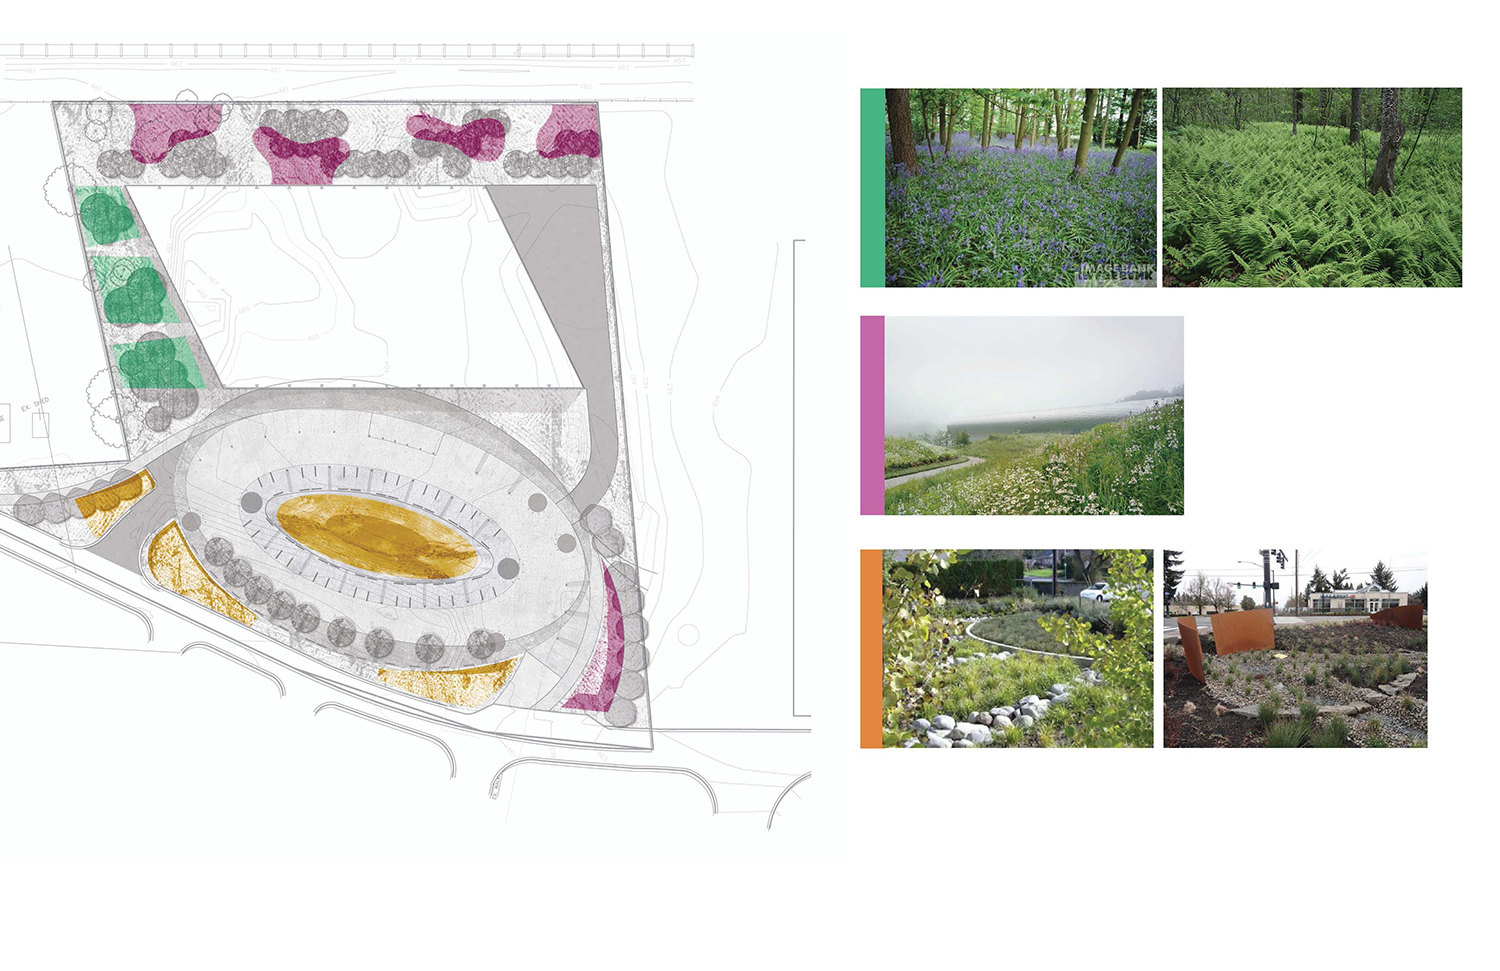 Site Plan illustrating landscape biomes and plant communities.